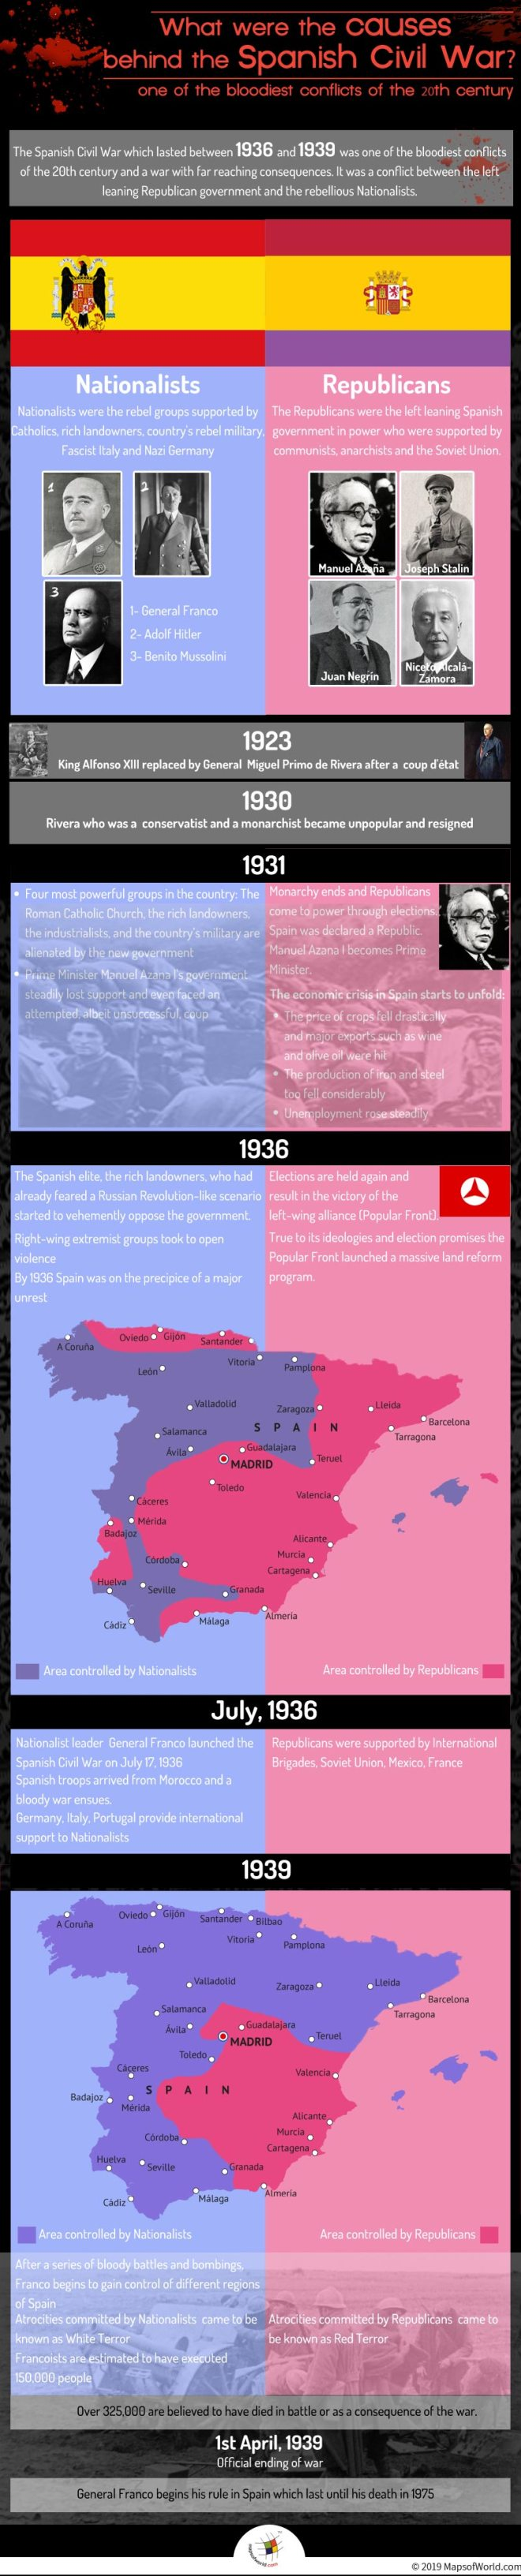 Infographic Giving Information on The Spanish Civil War